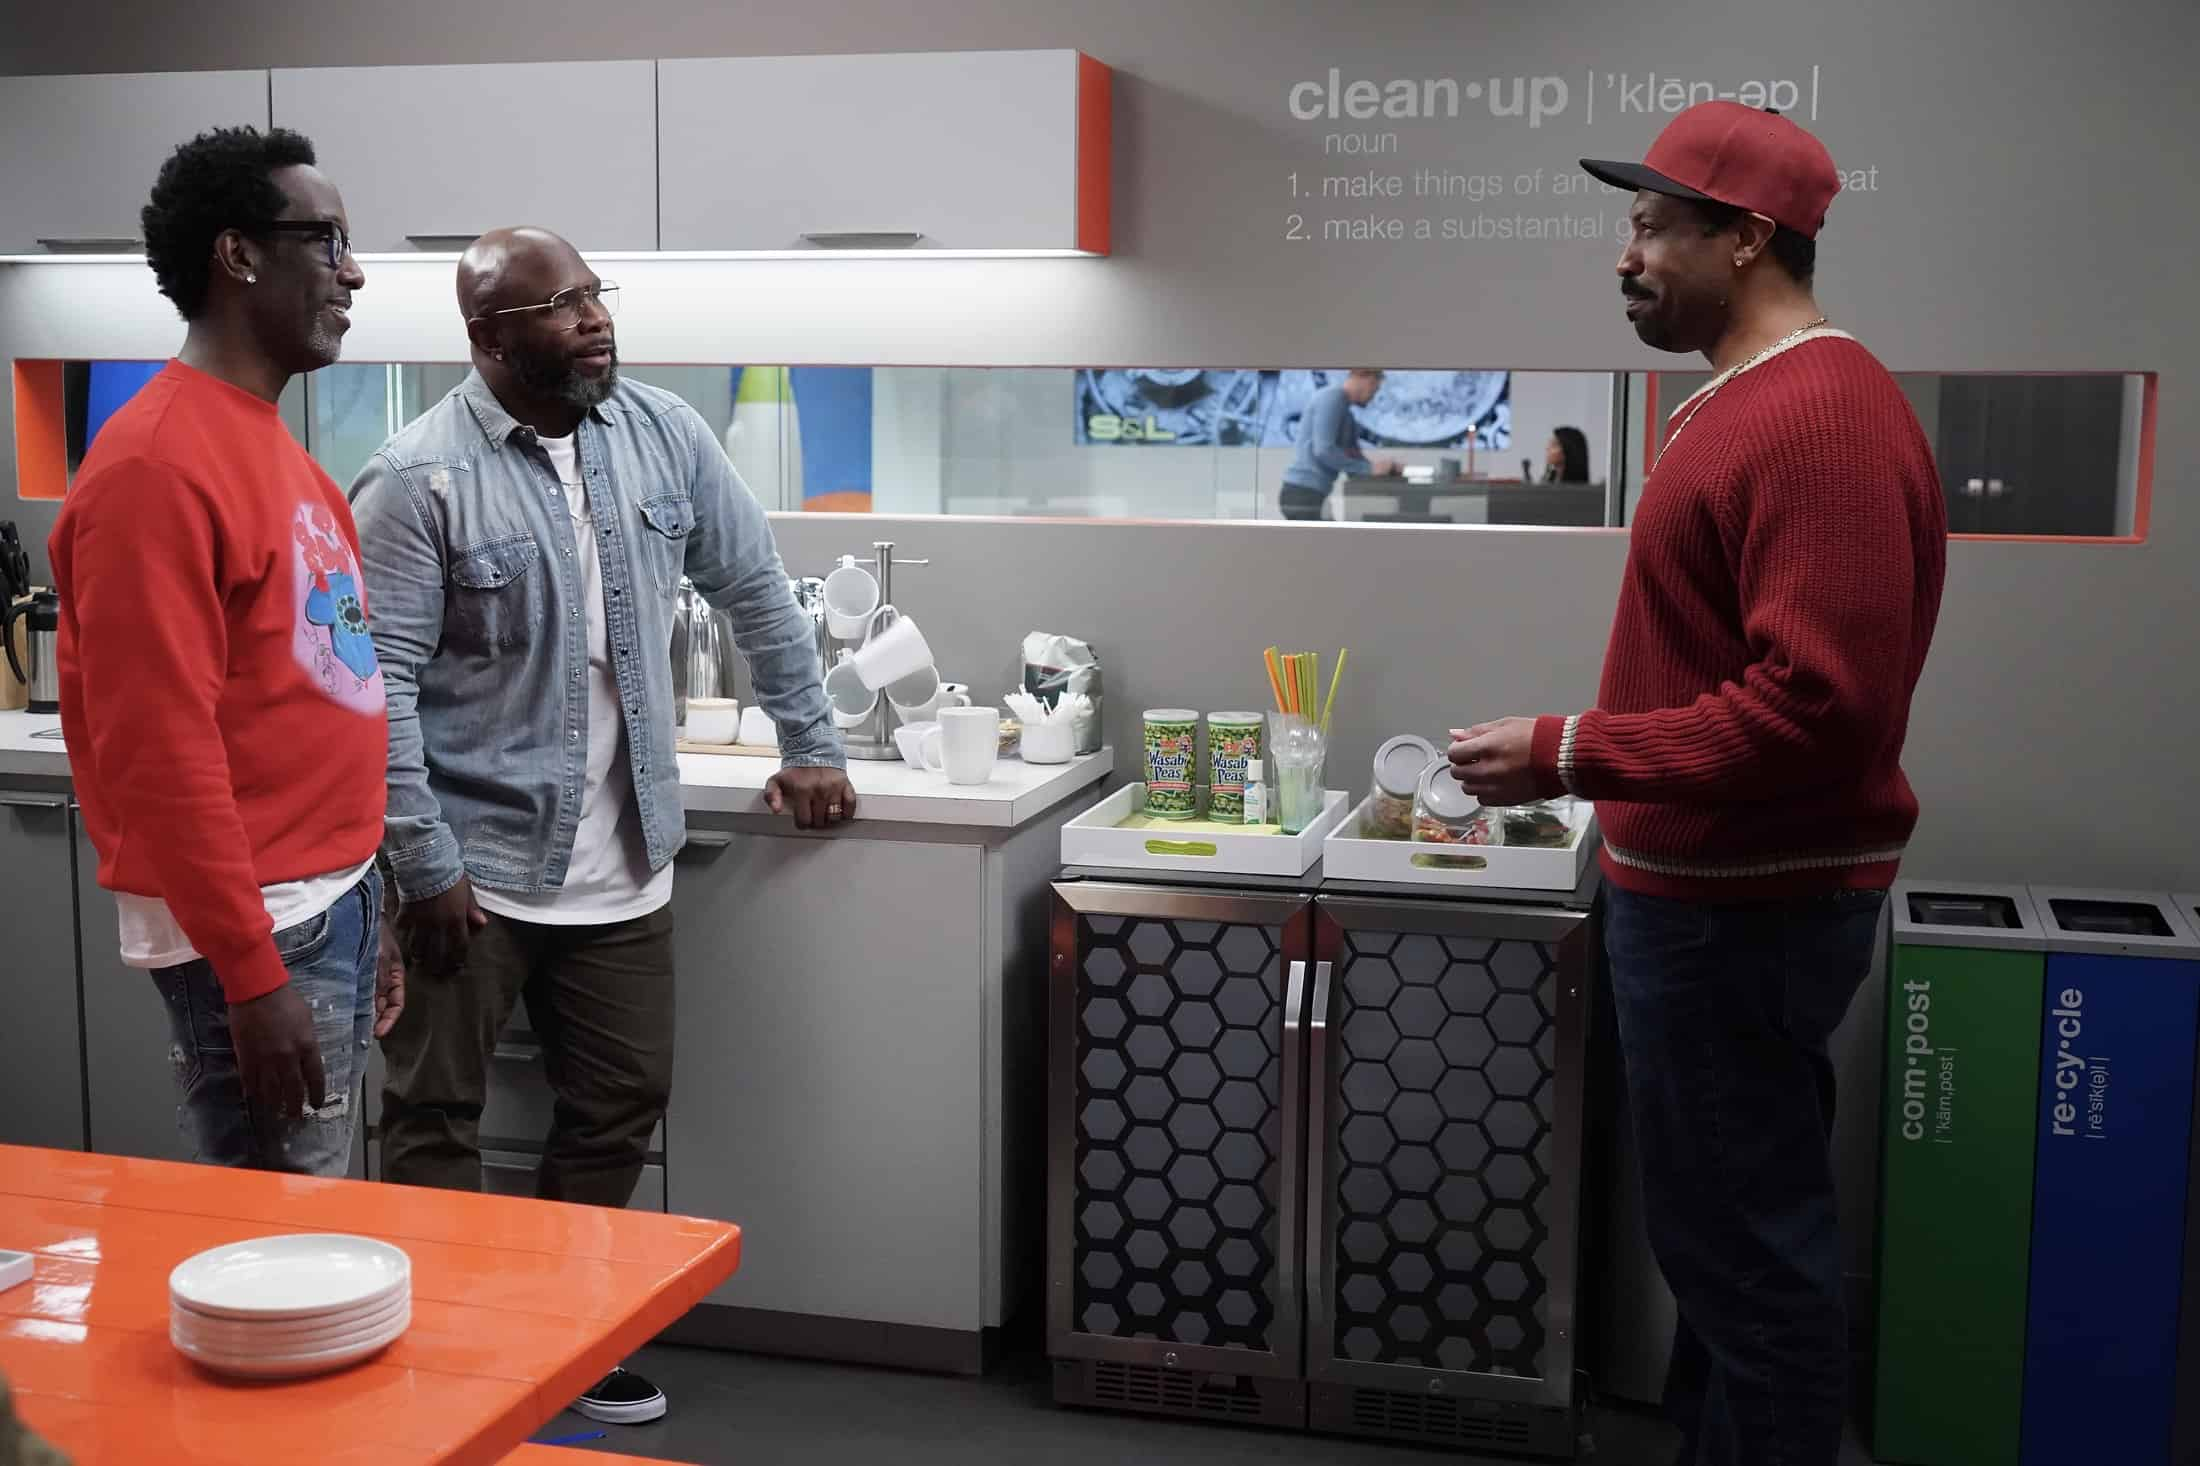 """BLACK-ISH Season 7 Episode 21- """"Urban Legend"""" – Dre feels pigeonholed to the urban marketing team at Stevens & Lido and realizes he needs to make some big career changes. Boyz II Men stop by the office to help out the team with a SoFi campaign pitch.  Meanwhile, Junior has to deal with the twins who are overstaying their welcome at his and Olivia's apartment on the season finale of """"black-ish,"""" TUESDAY, MAY 18 (9:00-9:30 p.m. EDT), on ABC. (ABC/Richard Cartwright) SHAWN STOCKMAN, WANYA MORRIS, DEON COLE"""